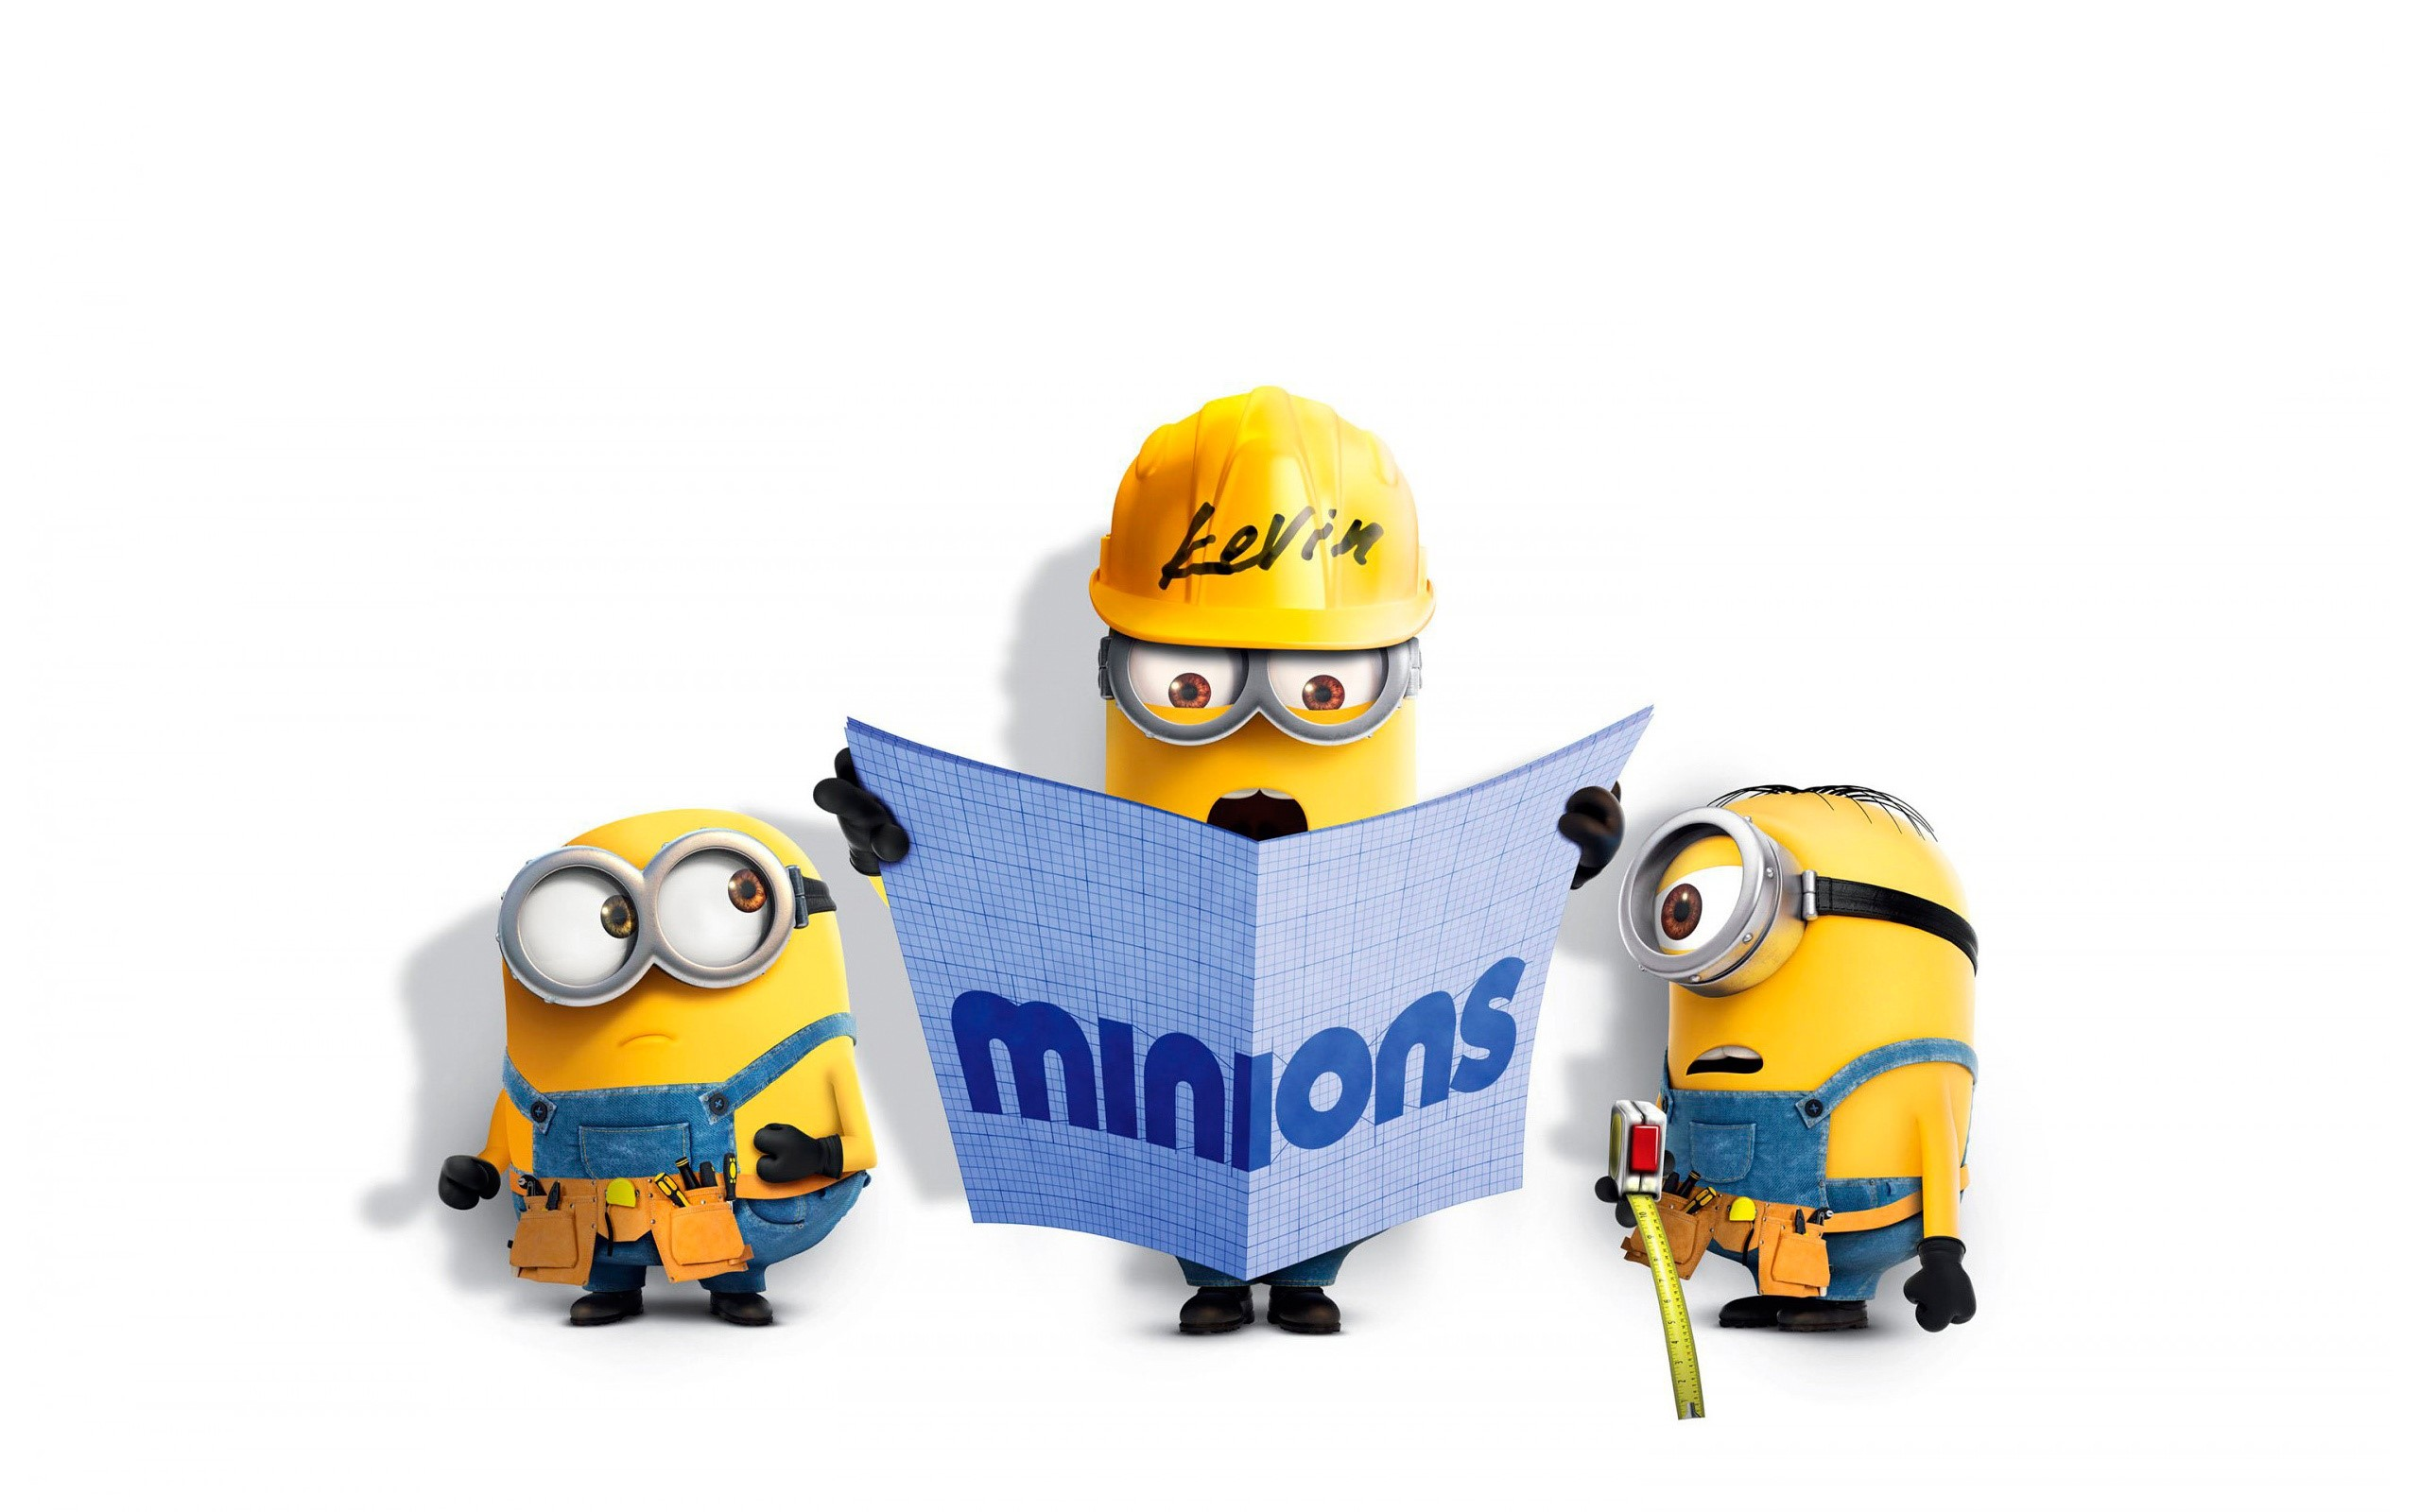 Wallpaper Bob, Kevin and Stuart from Minions